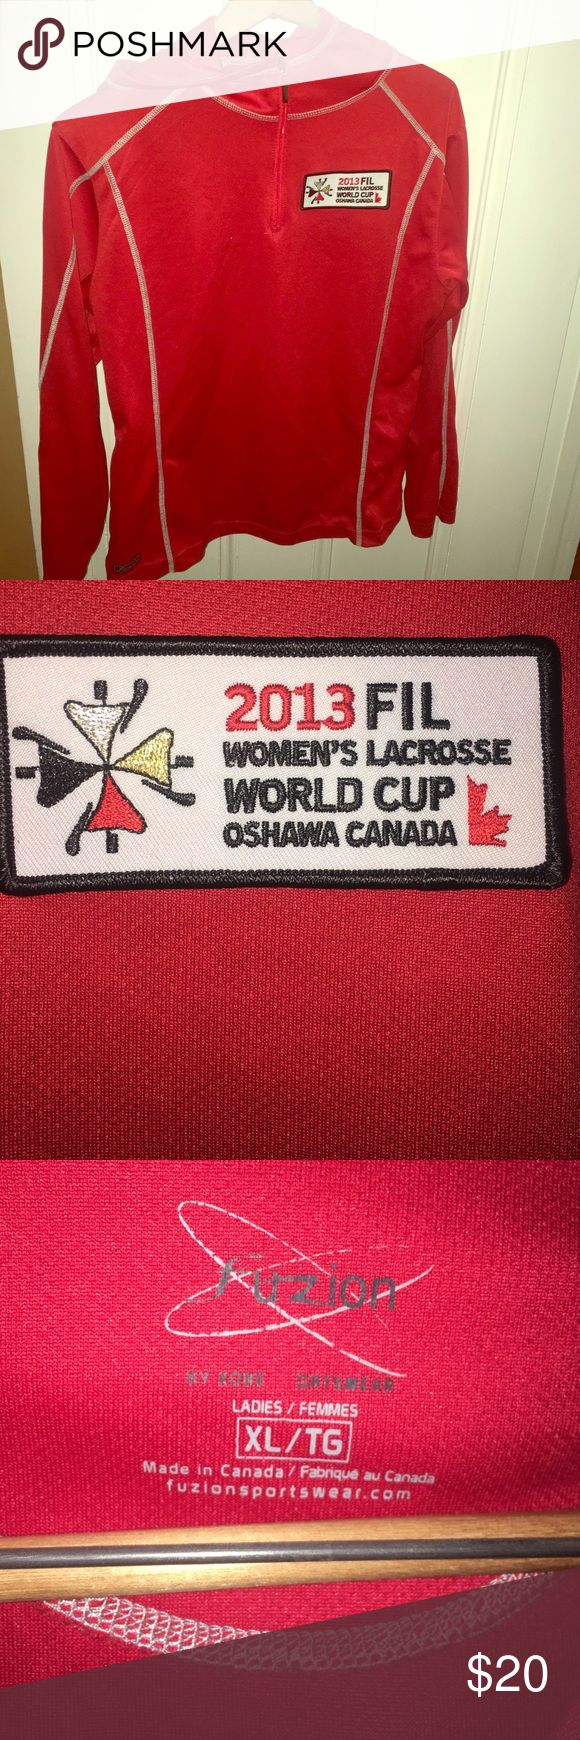 Fuzion Ladies Sportswear 2013 FIL Women's Lacrosse World Cup Oshawa Canada red and gray workout hoodie with half zip. Size XL but fits more of an L. 100% polyester. EUC. Fuzion  Tops Sweatshirts & Hoodies